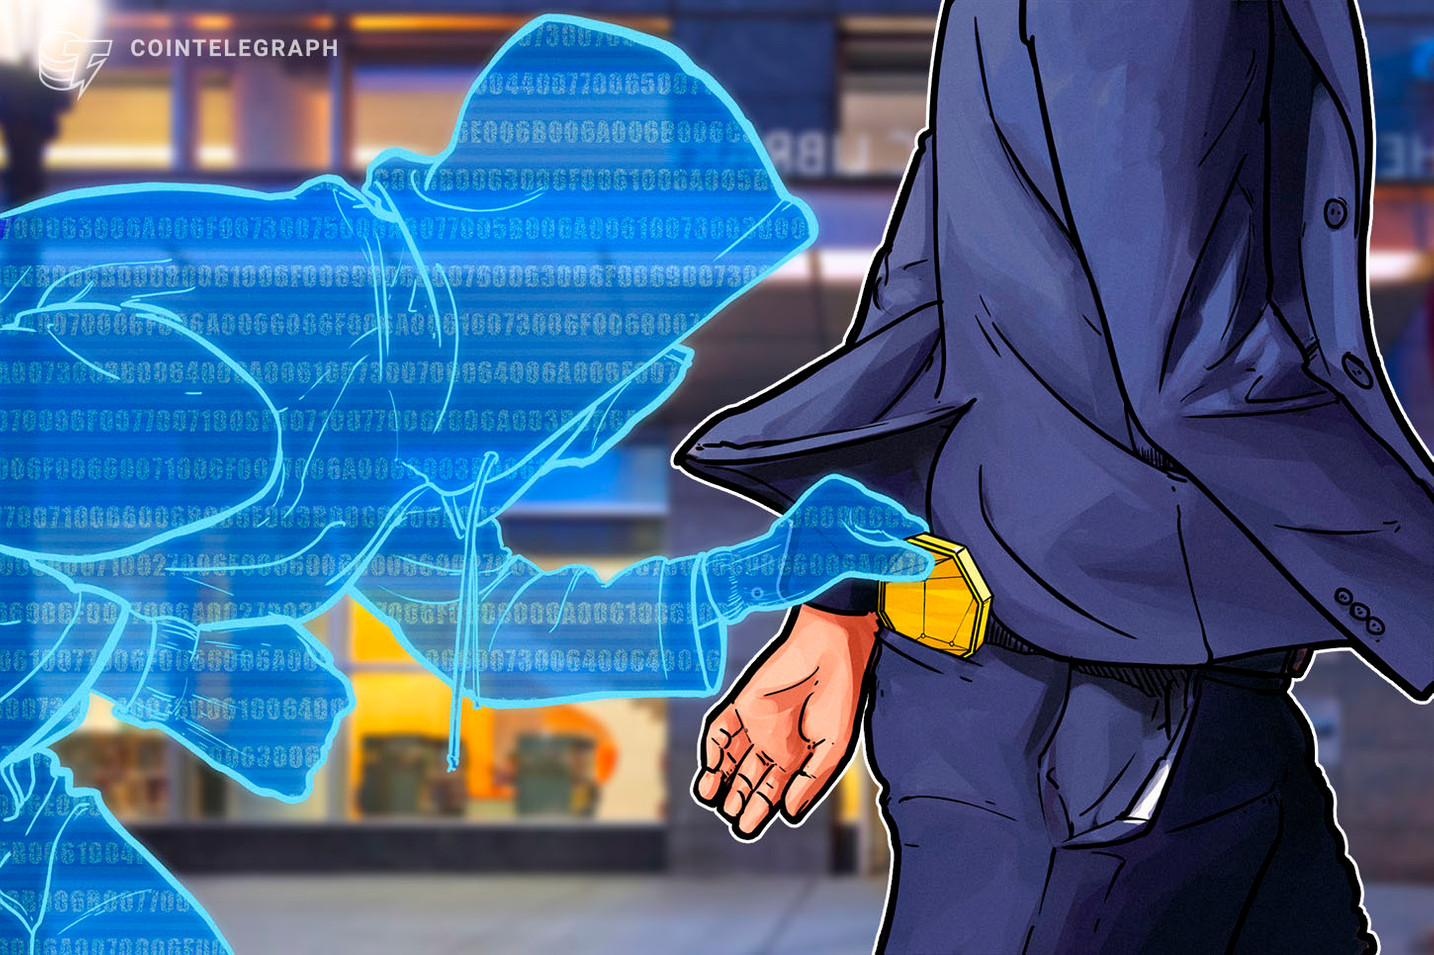 Nigeria: Financial Watchdog Receives Petition Against Crypto Exchange Over Account Closures